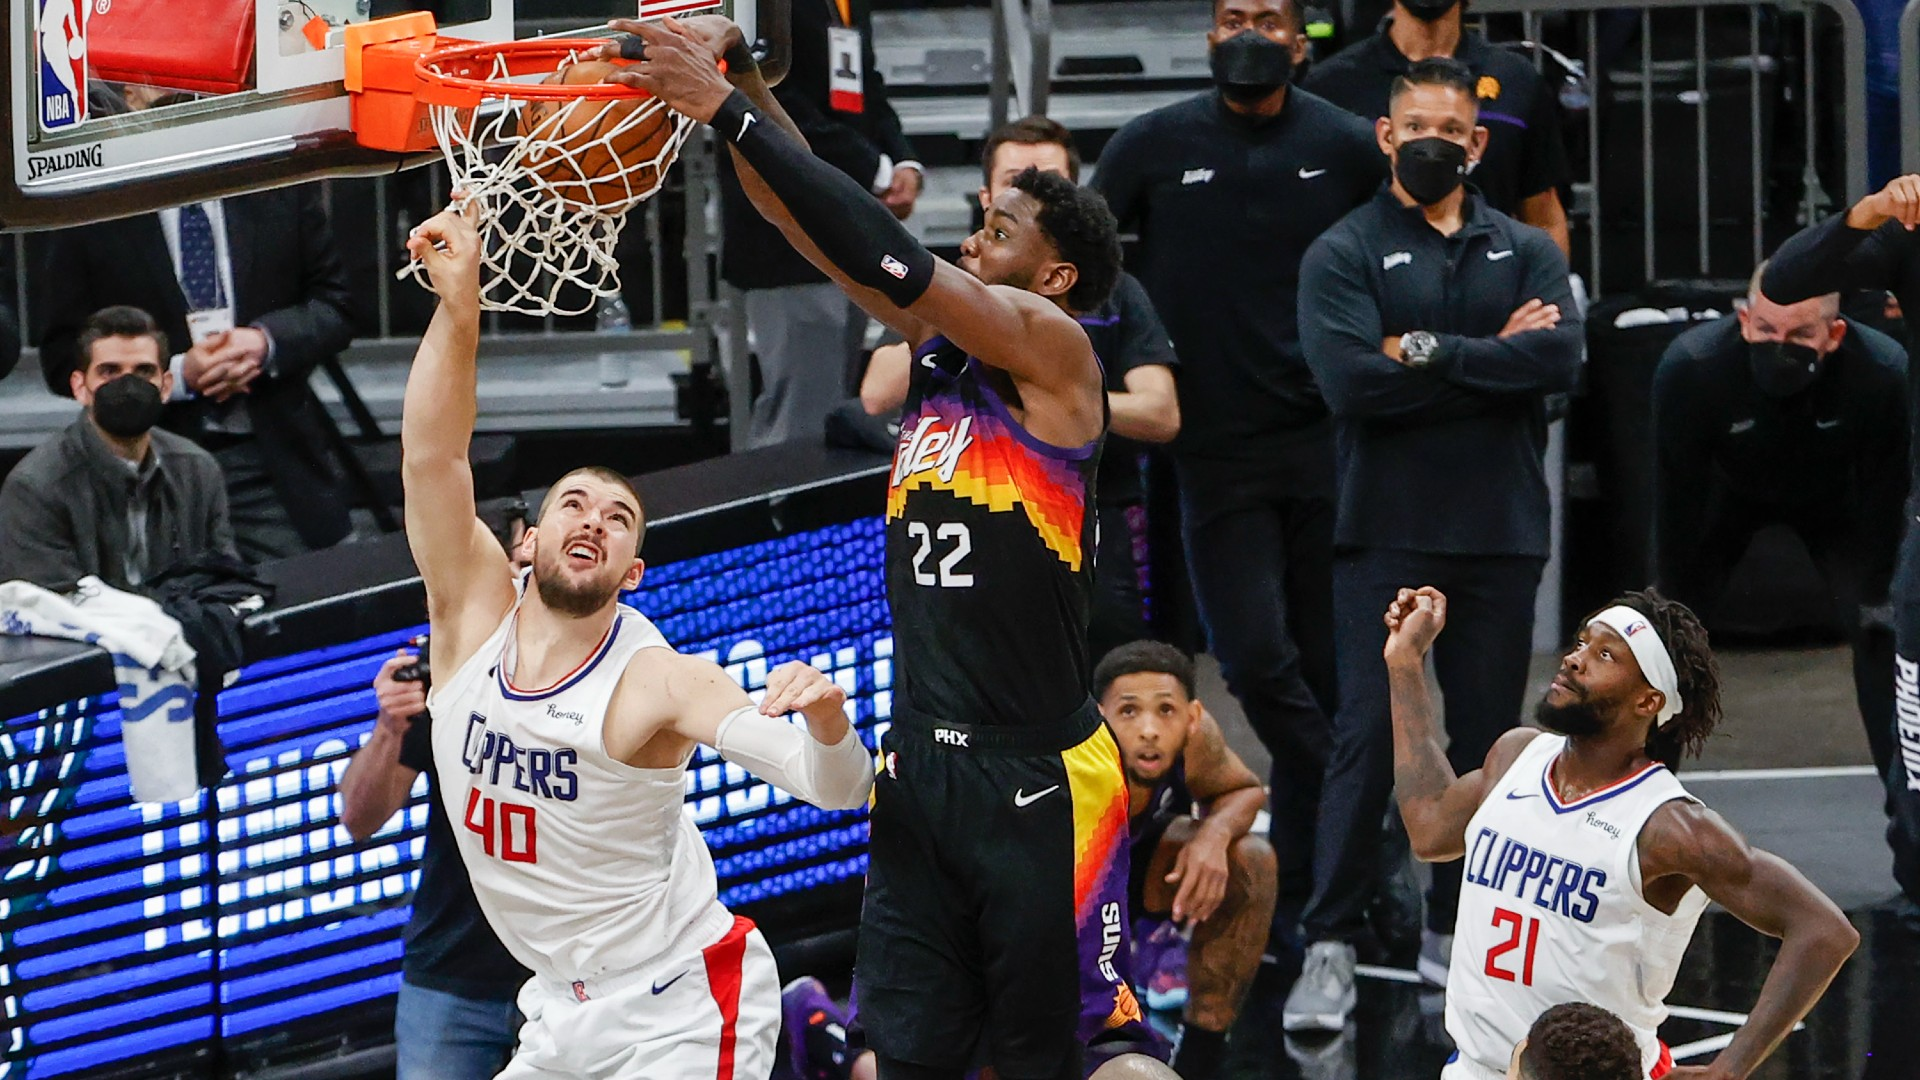 How Suns perfectly executed game-winning play — and why goaltending didn't apply on Deandre Ayton's dunk